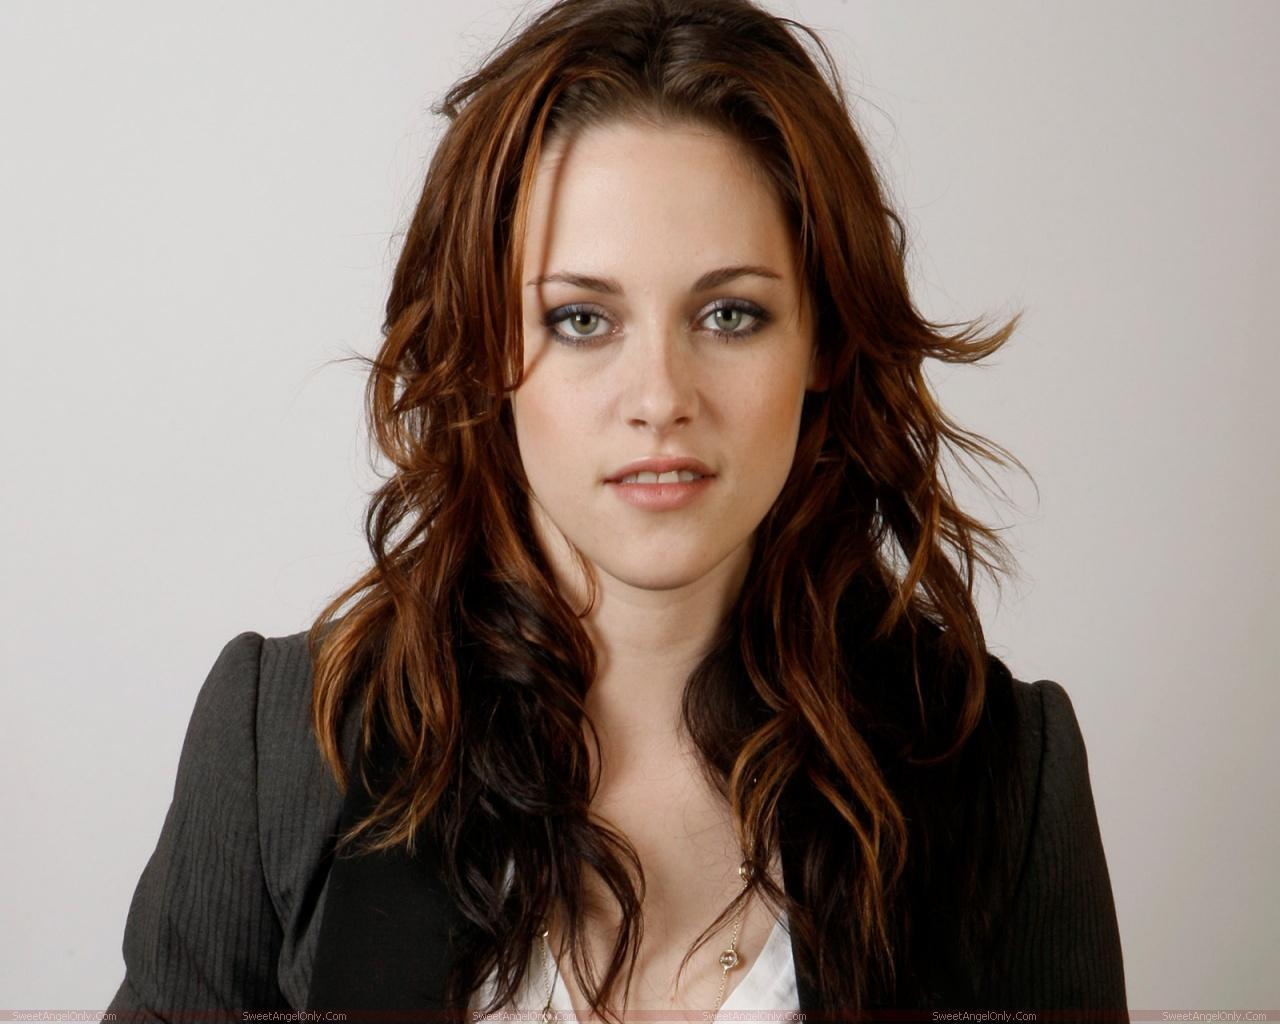 http://4.bp.blogspot.com/-EGgRqOv1DQA/TX4h5s1x70I/AAAAAAAAFl8/hXEMf35_9b8/s1600/kristen_stewart_hollywood_hot_actress_wallpaper_sweetangelonly_22.jpg